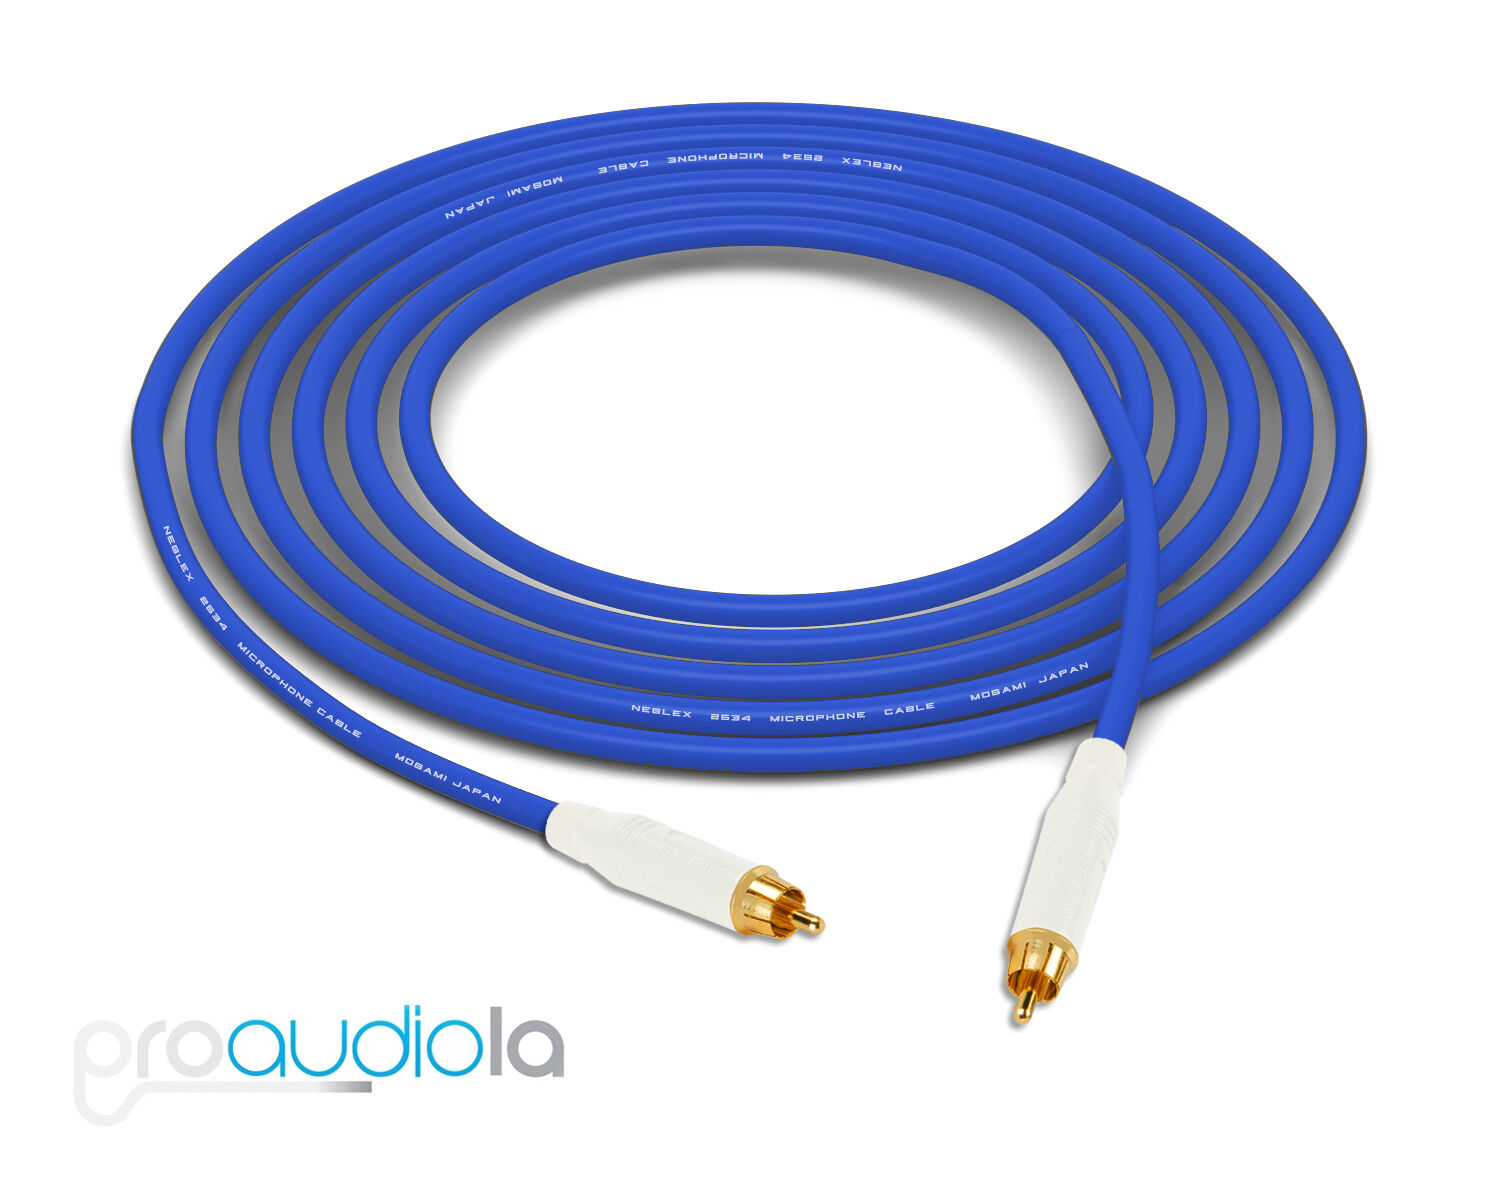 Mogami 2534 Quad Cable   White Amphenol RCA to RCA   bluee 15 Feet 15 Ft. 15'